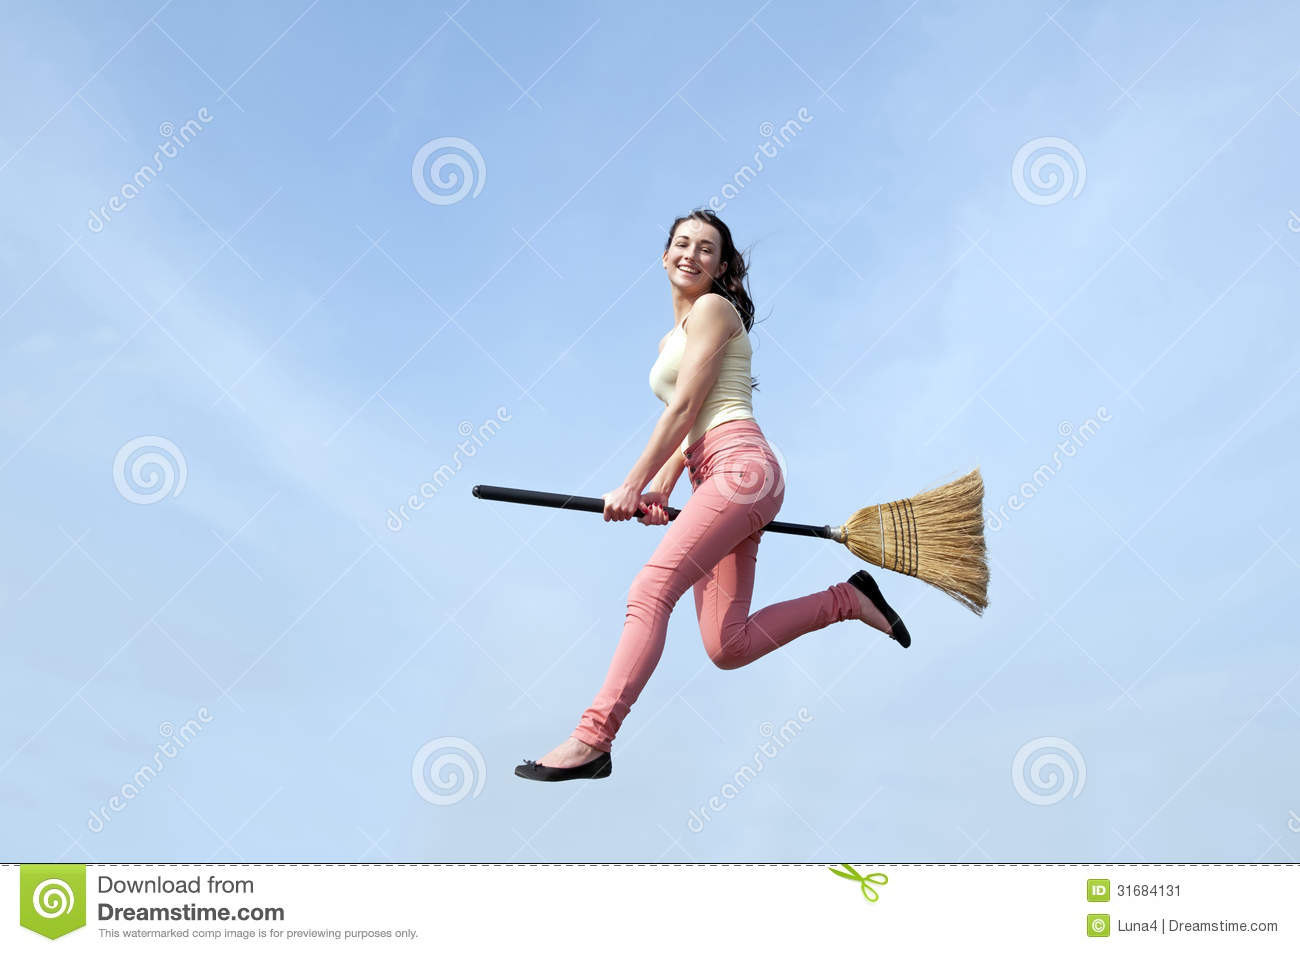 woman riding broom stock